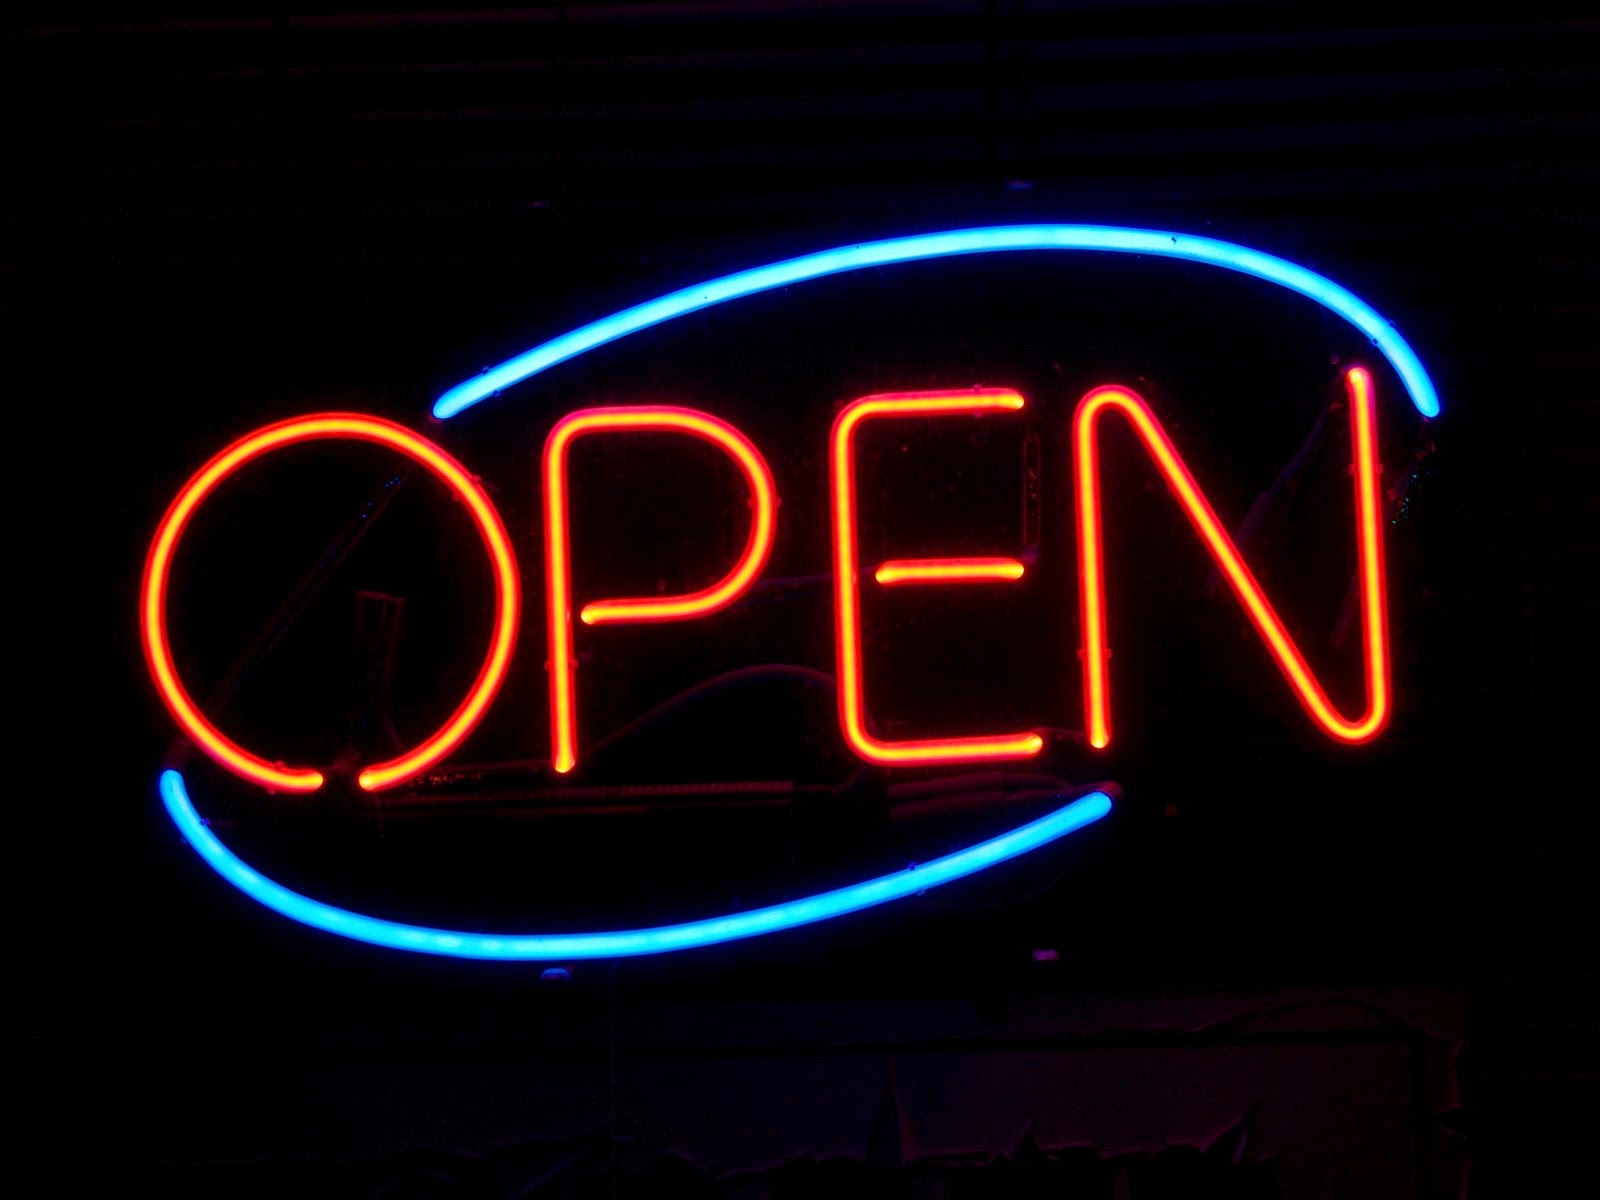 open neon sign photos wallpaper 66626